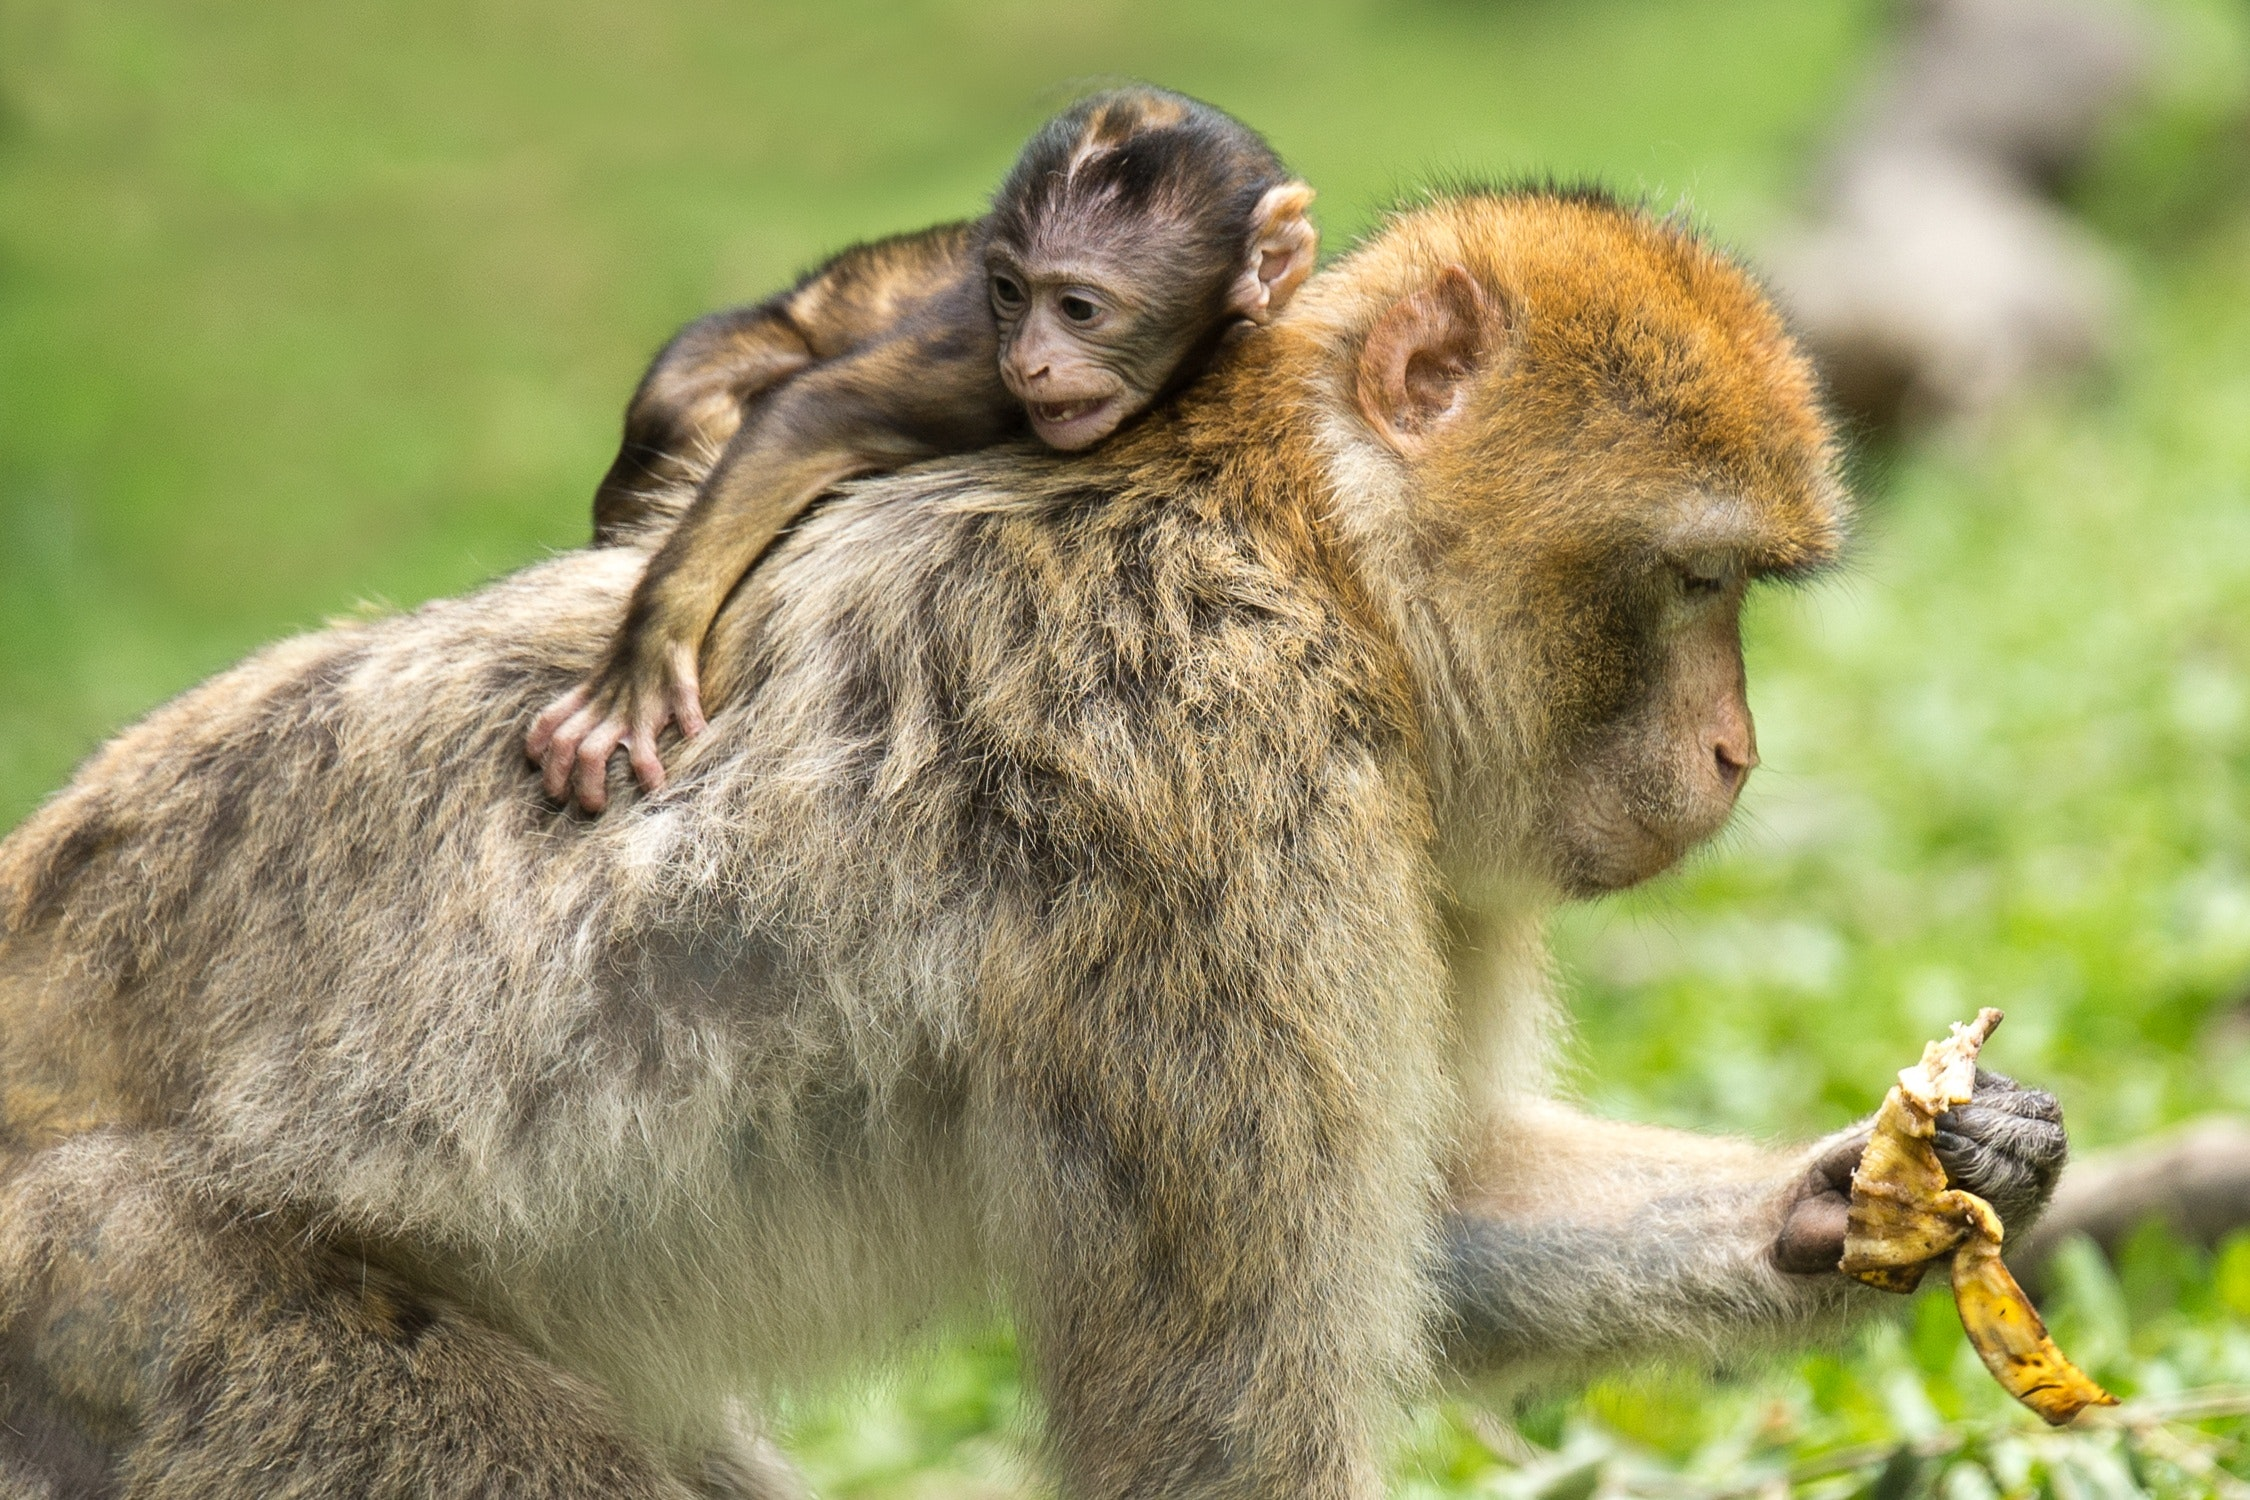 Baby Monkey Hanging at the Back Off Adult Monkey, Primate, Zoo, Nature, Family, HQ Photo